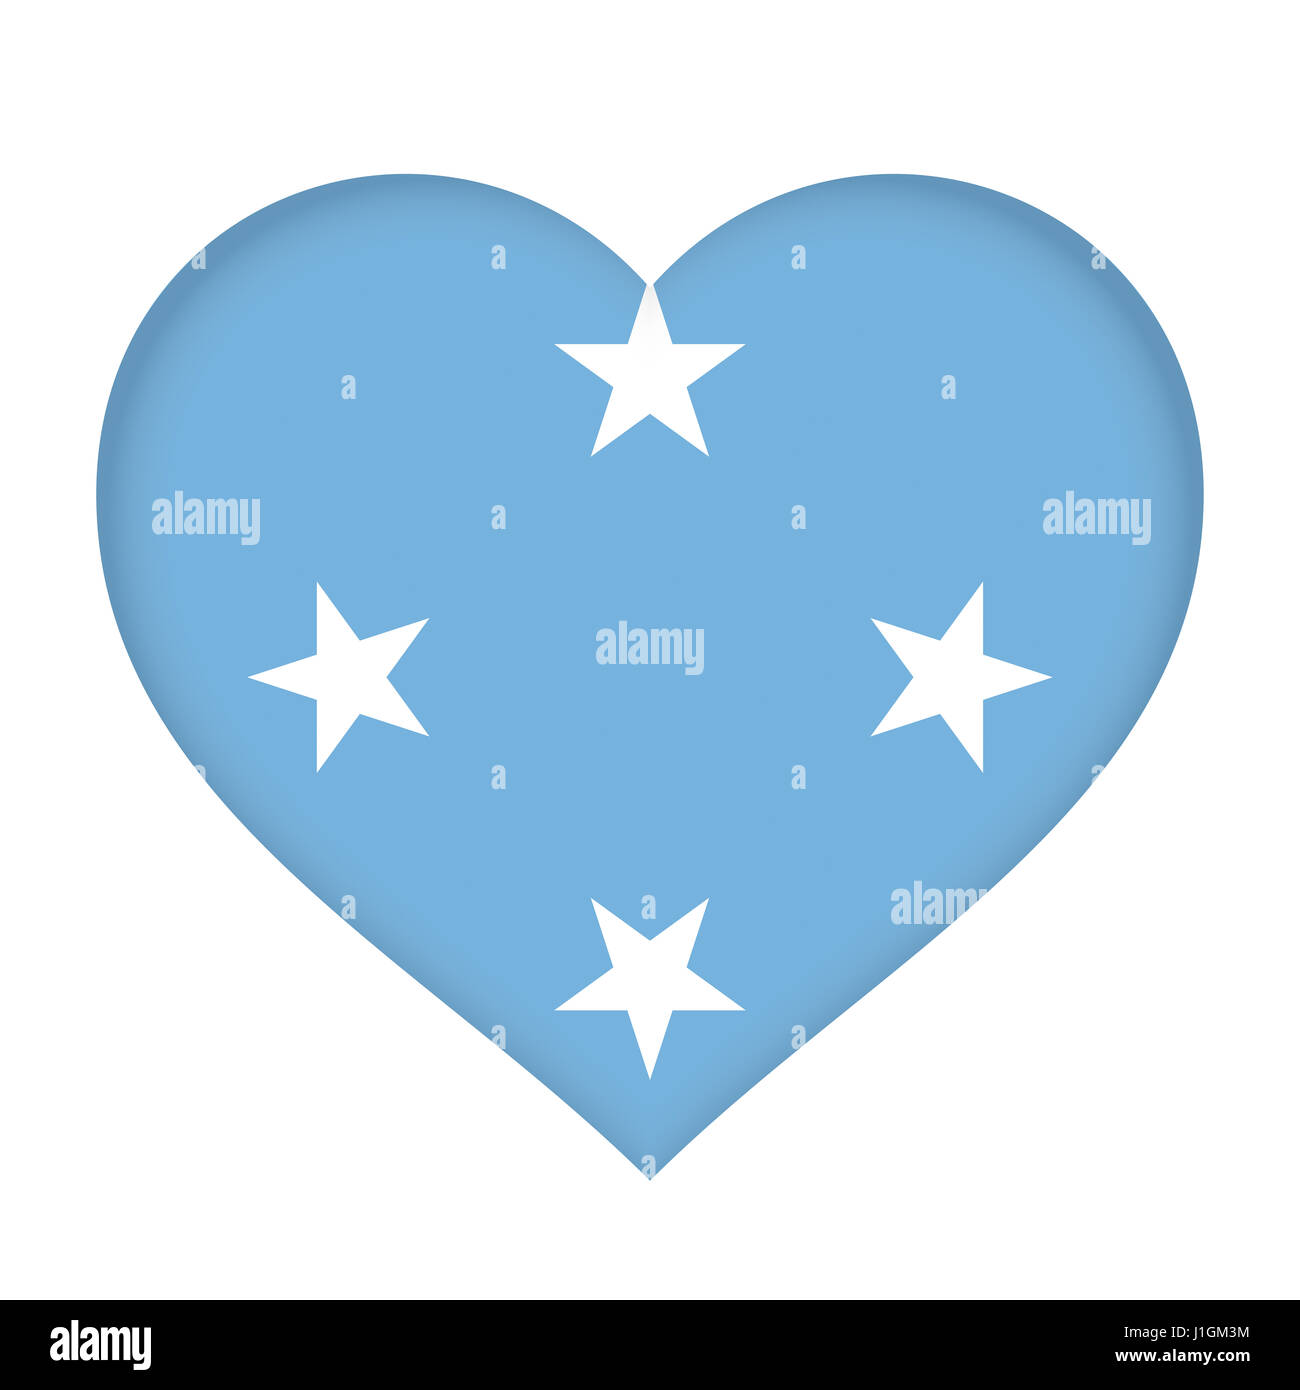 Illustration of the flag of Micronesia shaped like a heart - Stock Image